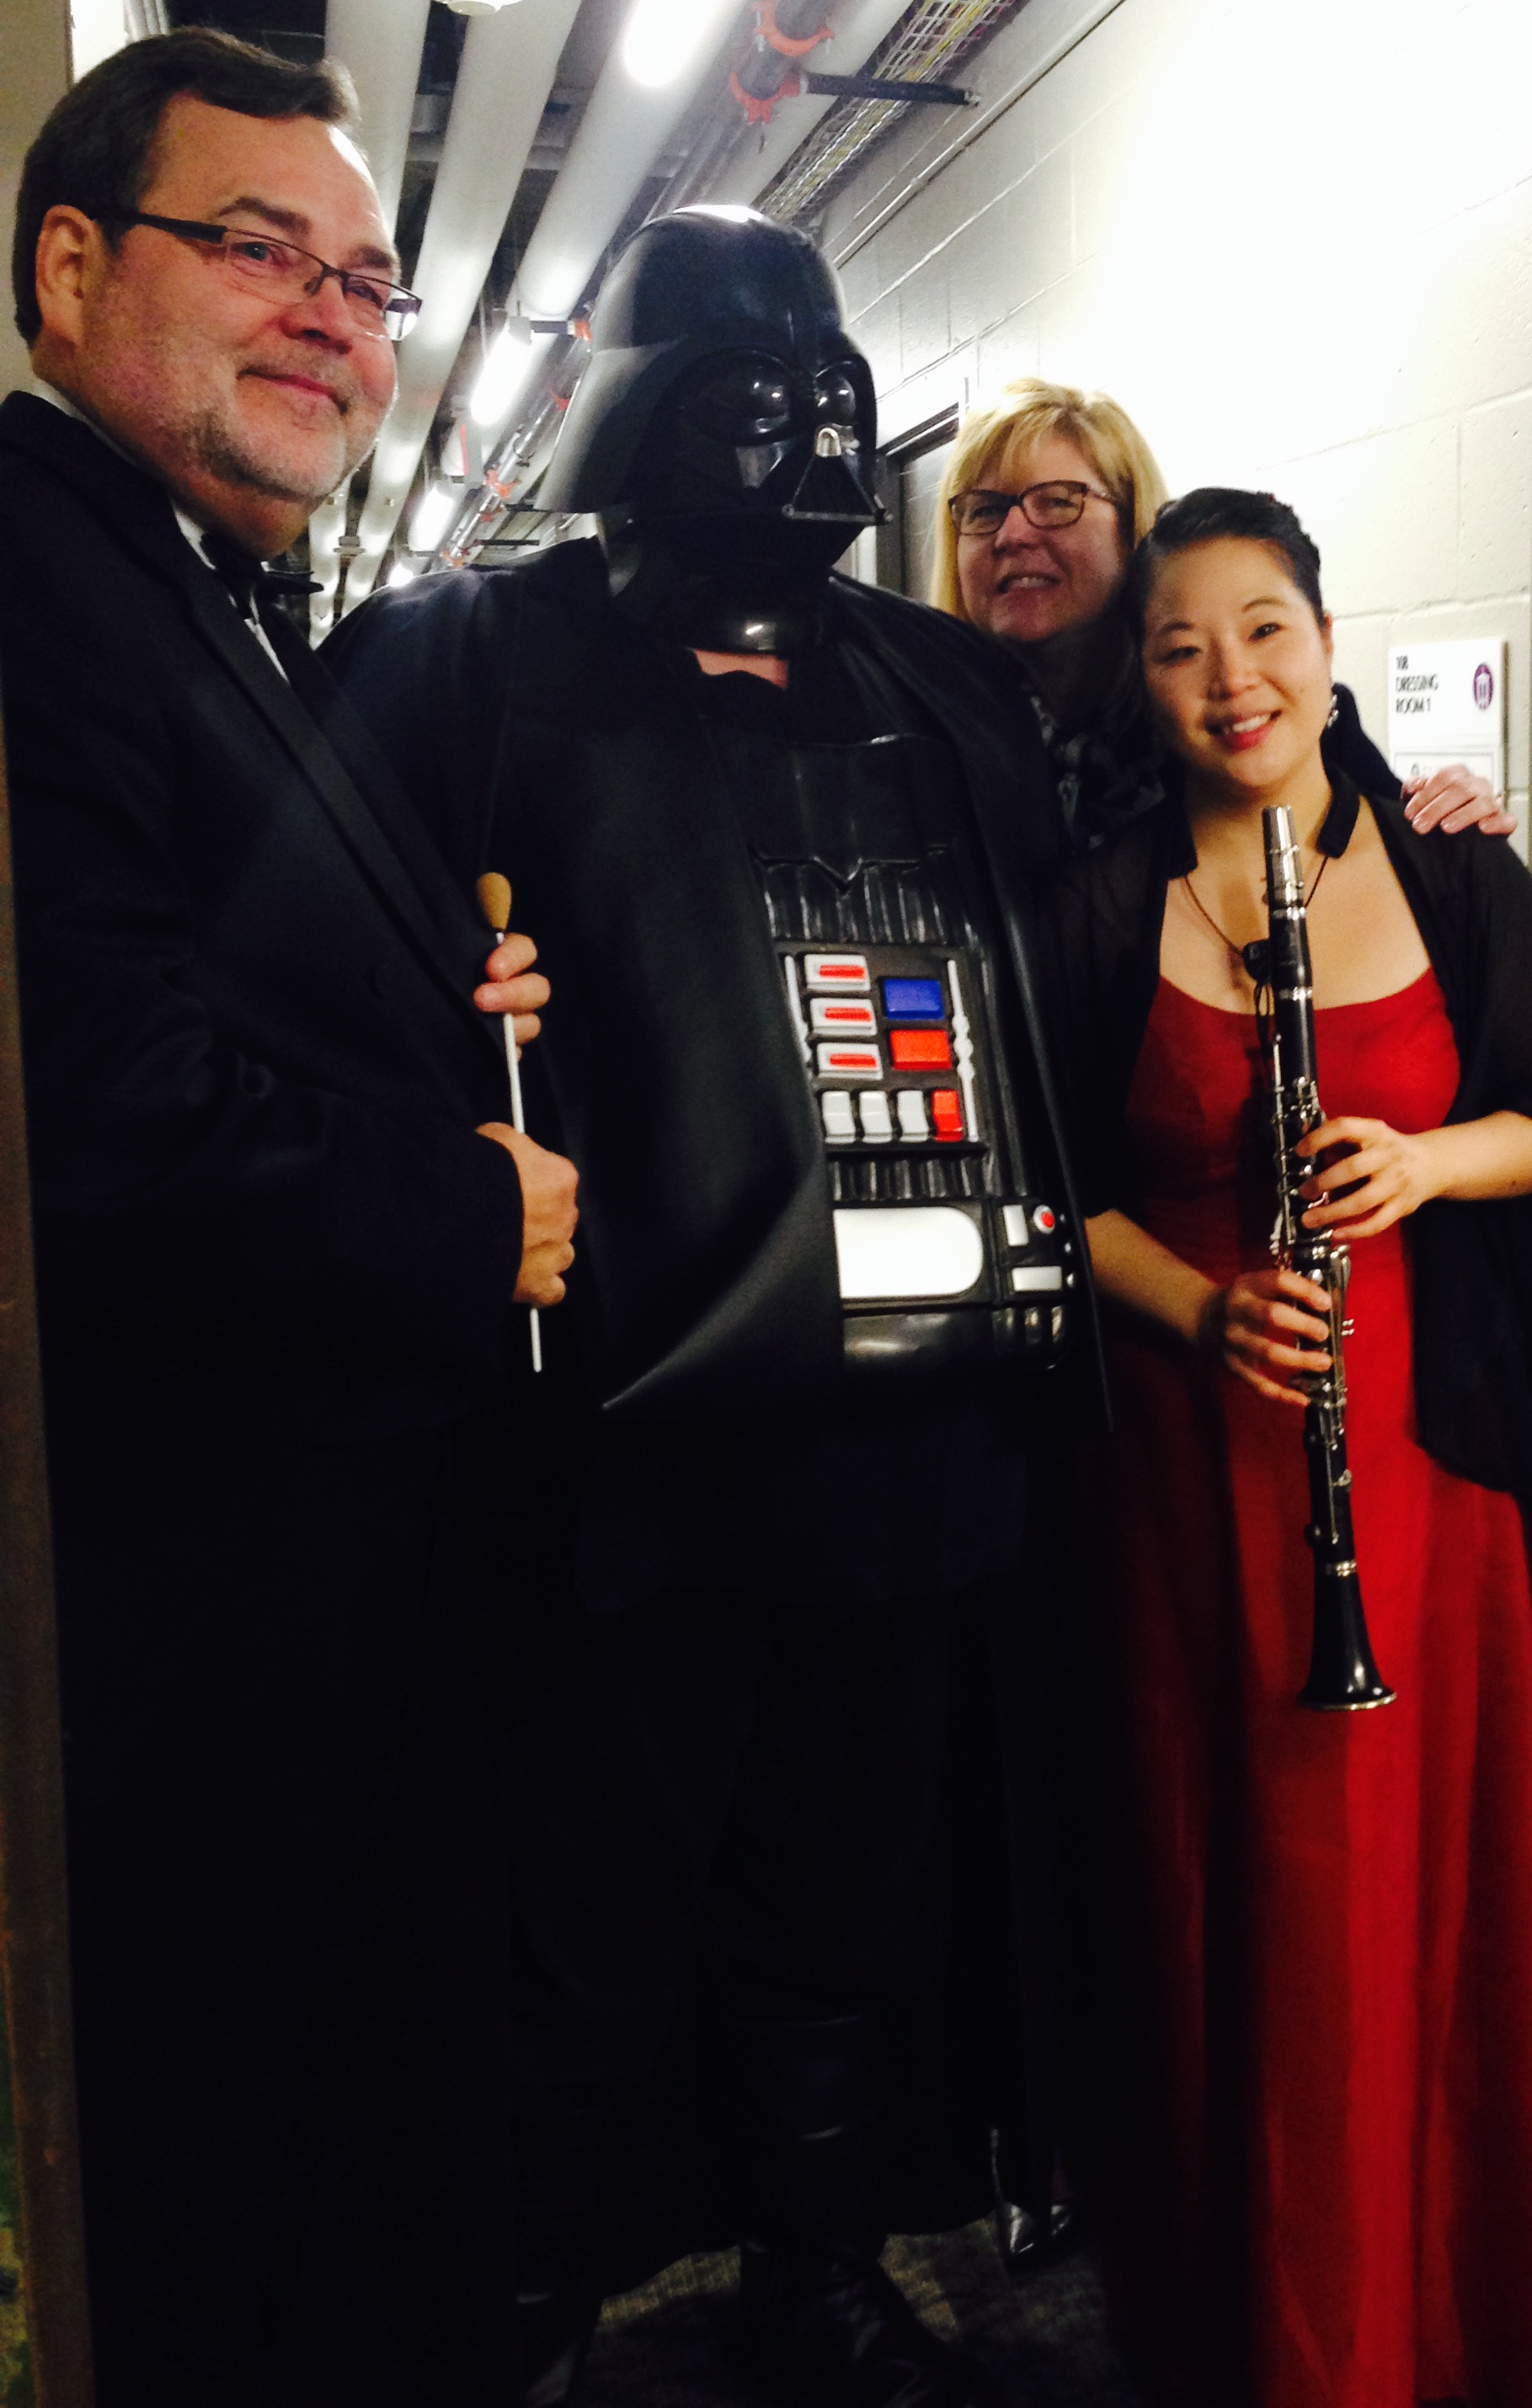 After performing Debussy Premier Rhapsody with Maestro Joiner, President Davis and Darth Vadar at Furman University